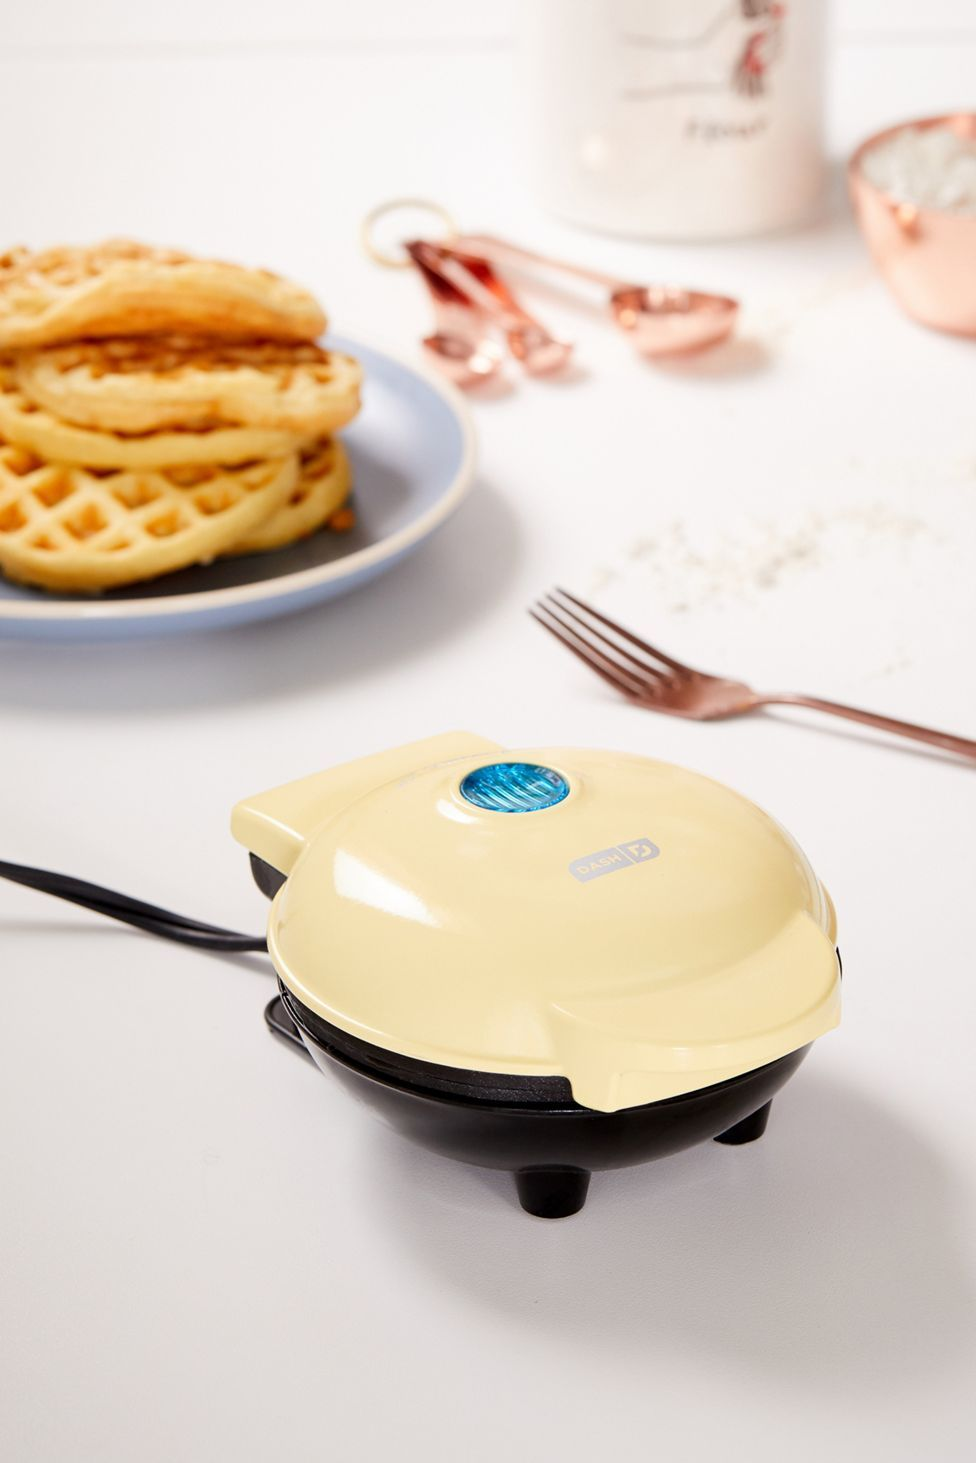 Mini waffle maker urban outfitters in 2020 waffles